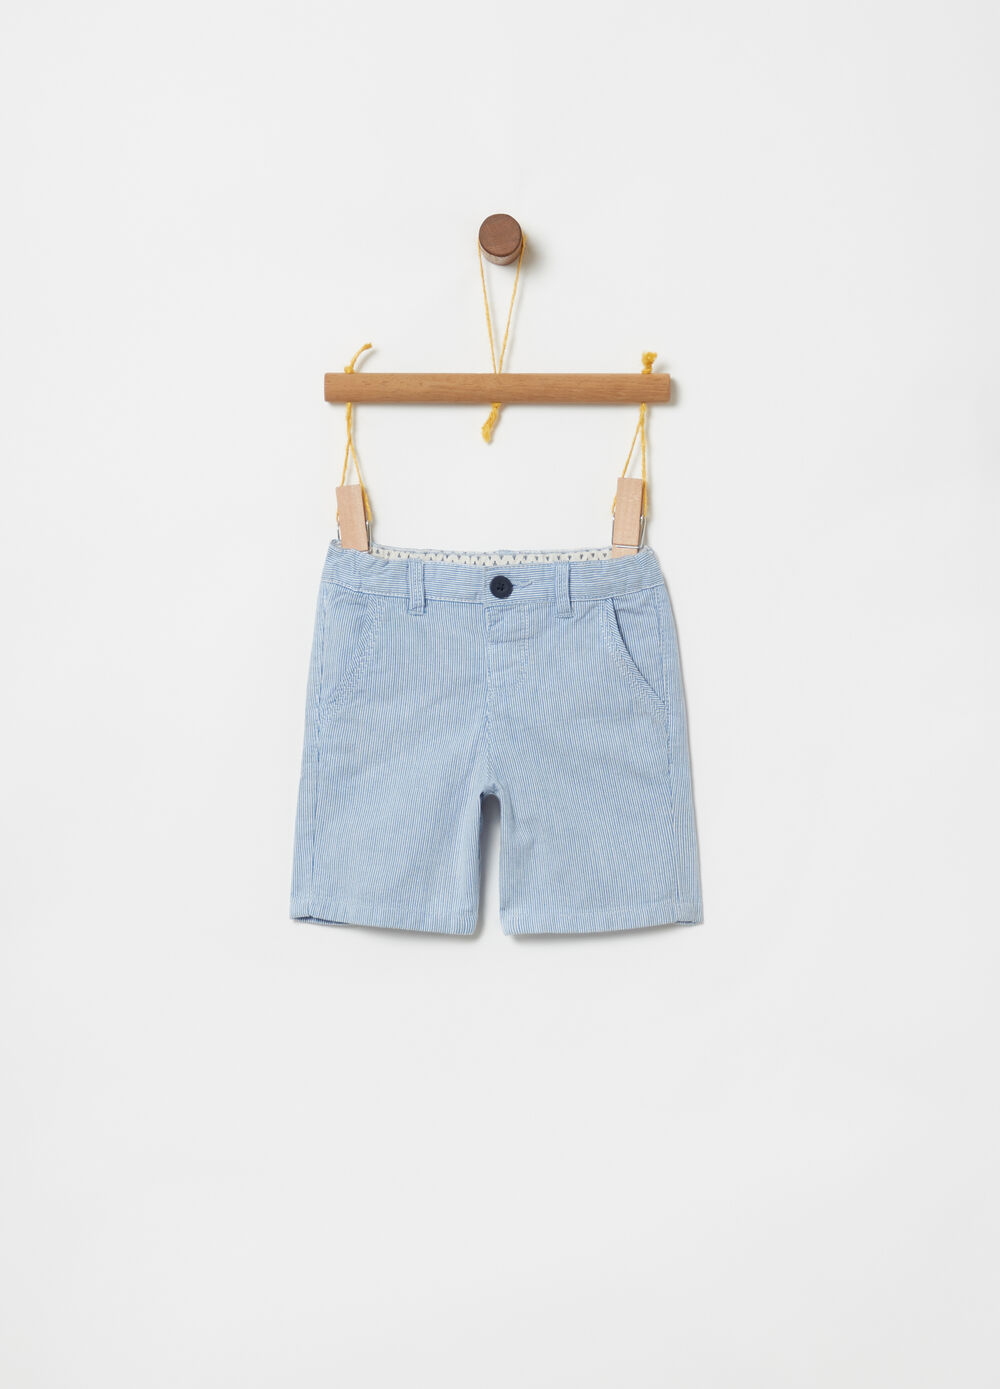 100% cotton Bermuda shorts with pockets and stripes